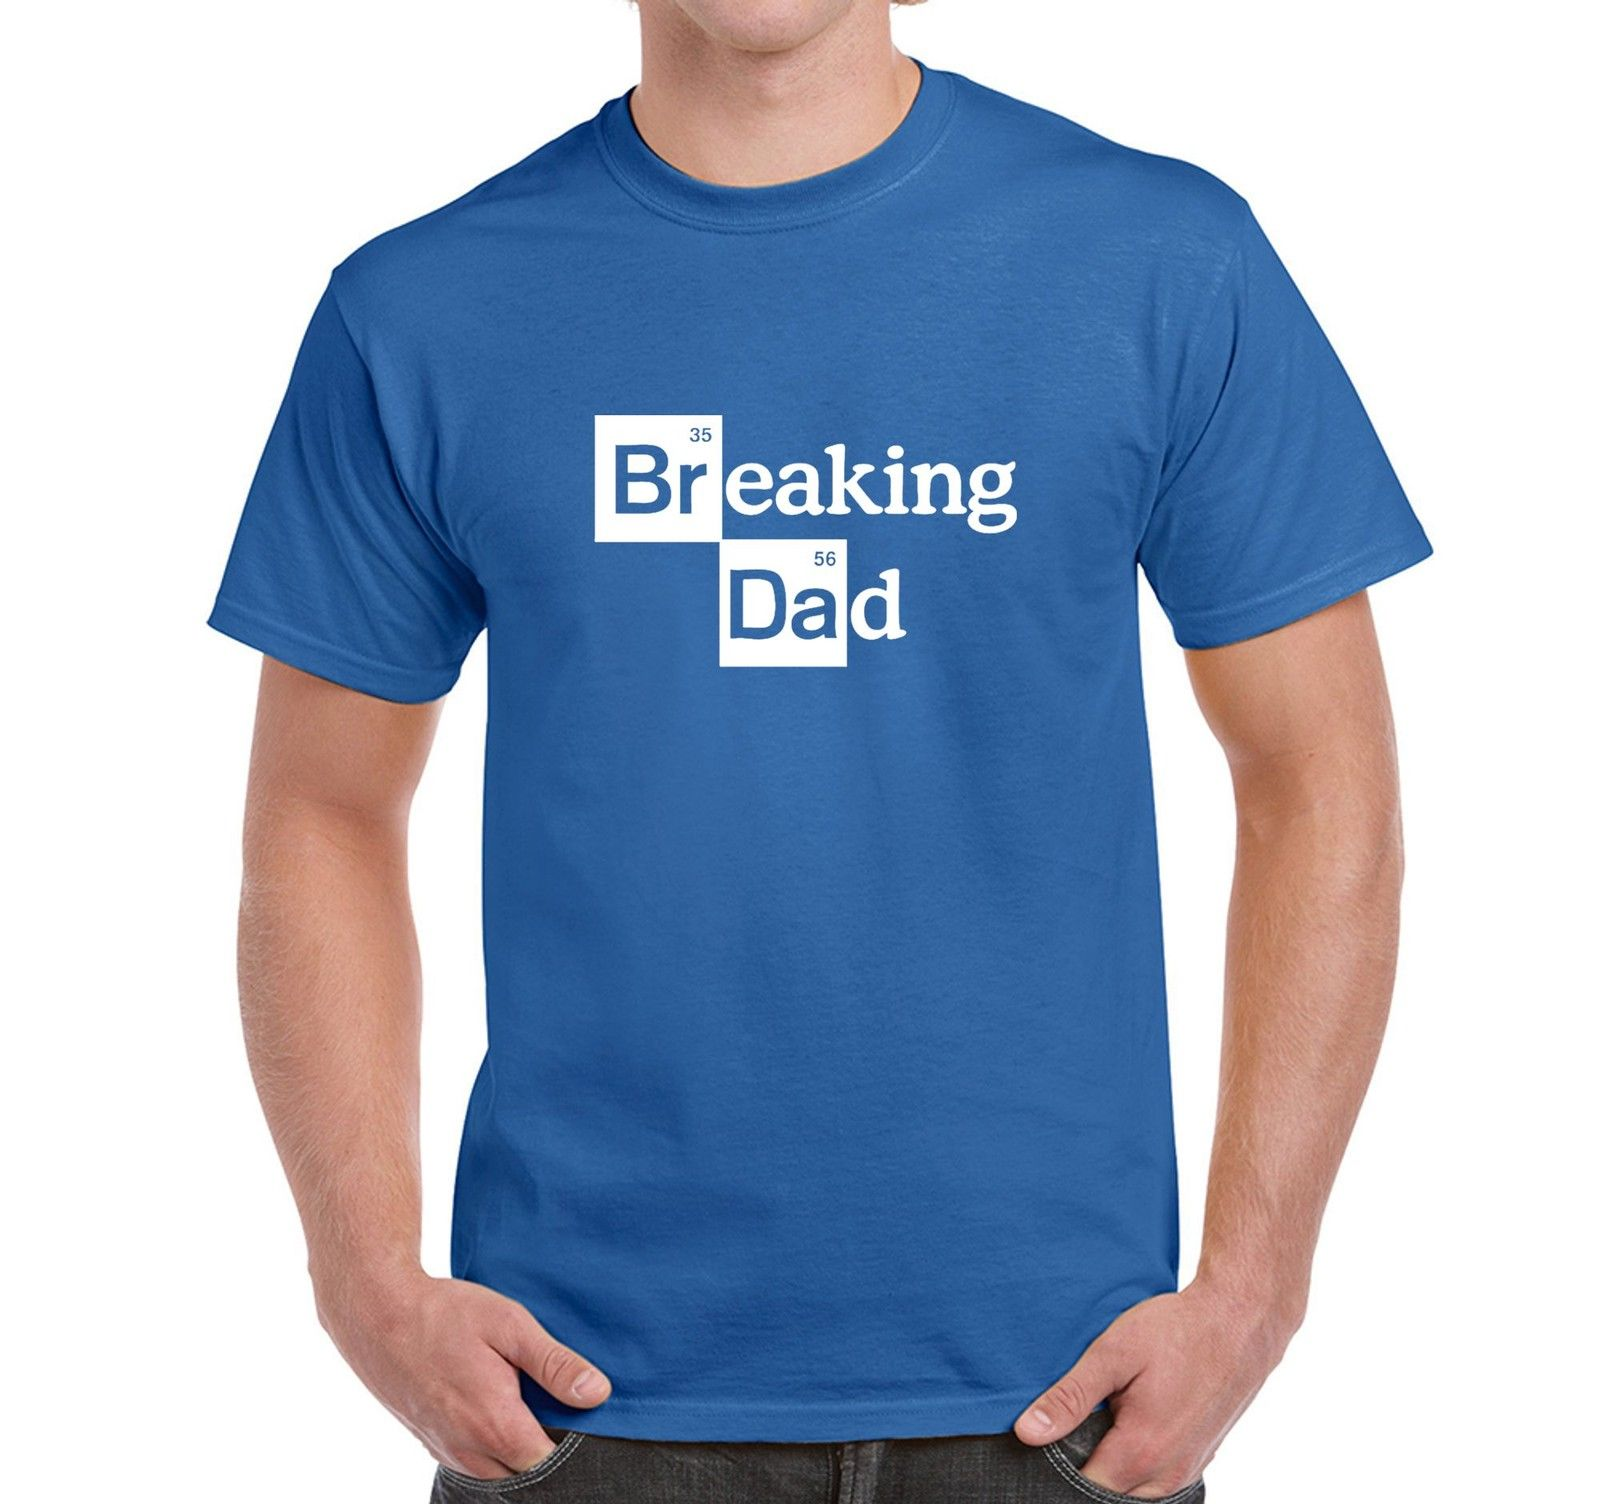 Men 39 s Fun Novelty T shirt Breaking Dad Fathers Day Gift New T Shirts Funny Tops Tee New Unisex Funny High Quality Casual in T Shirts from Men 39 s Clothing